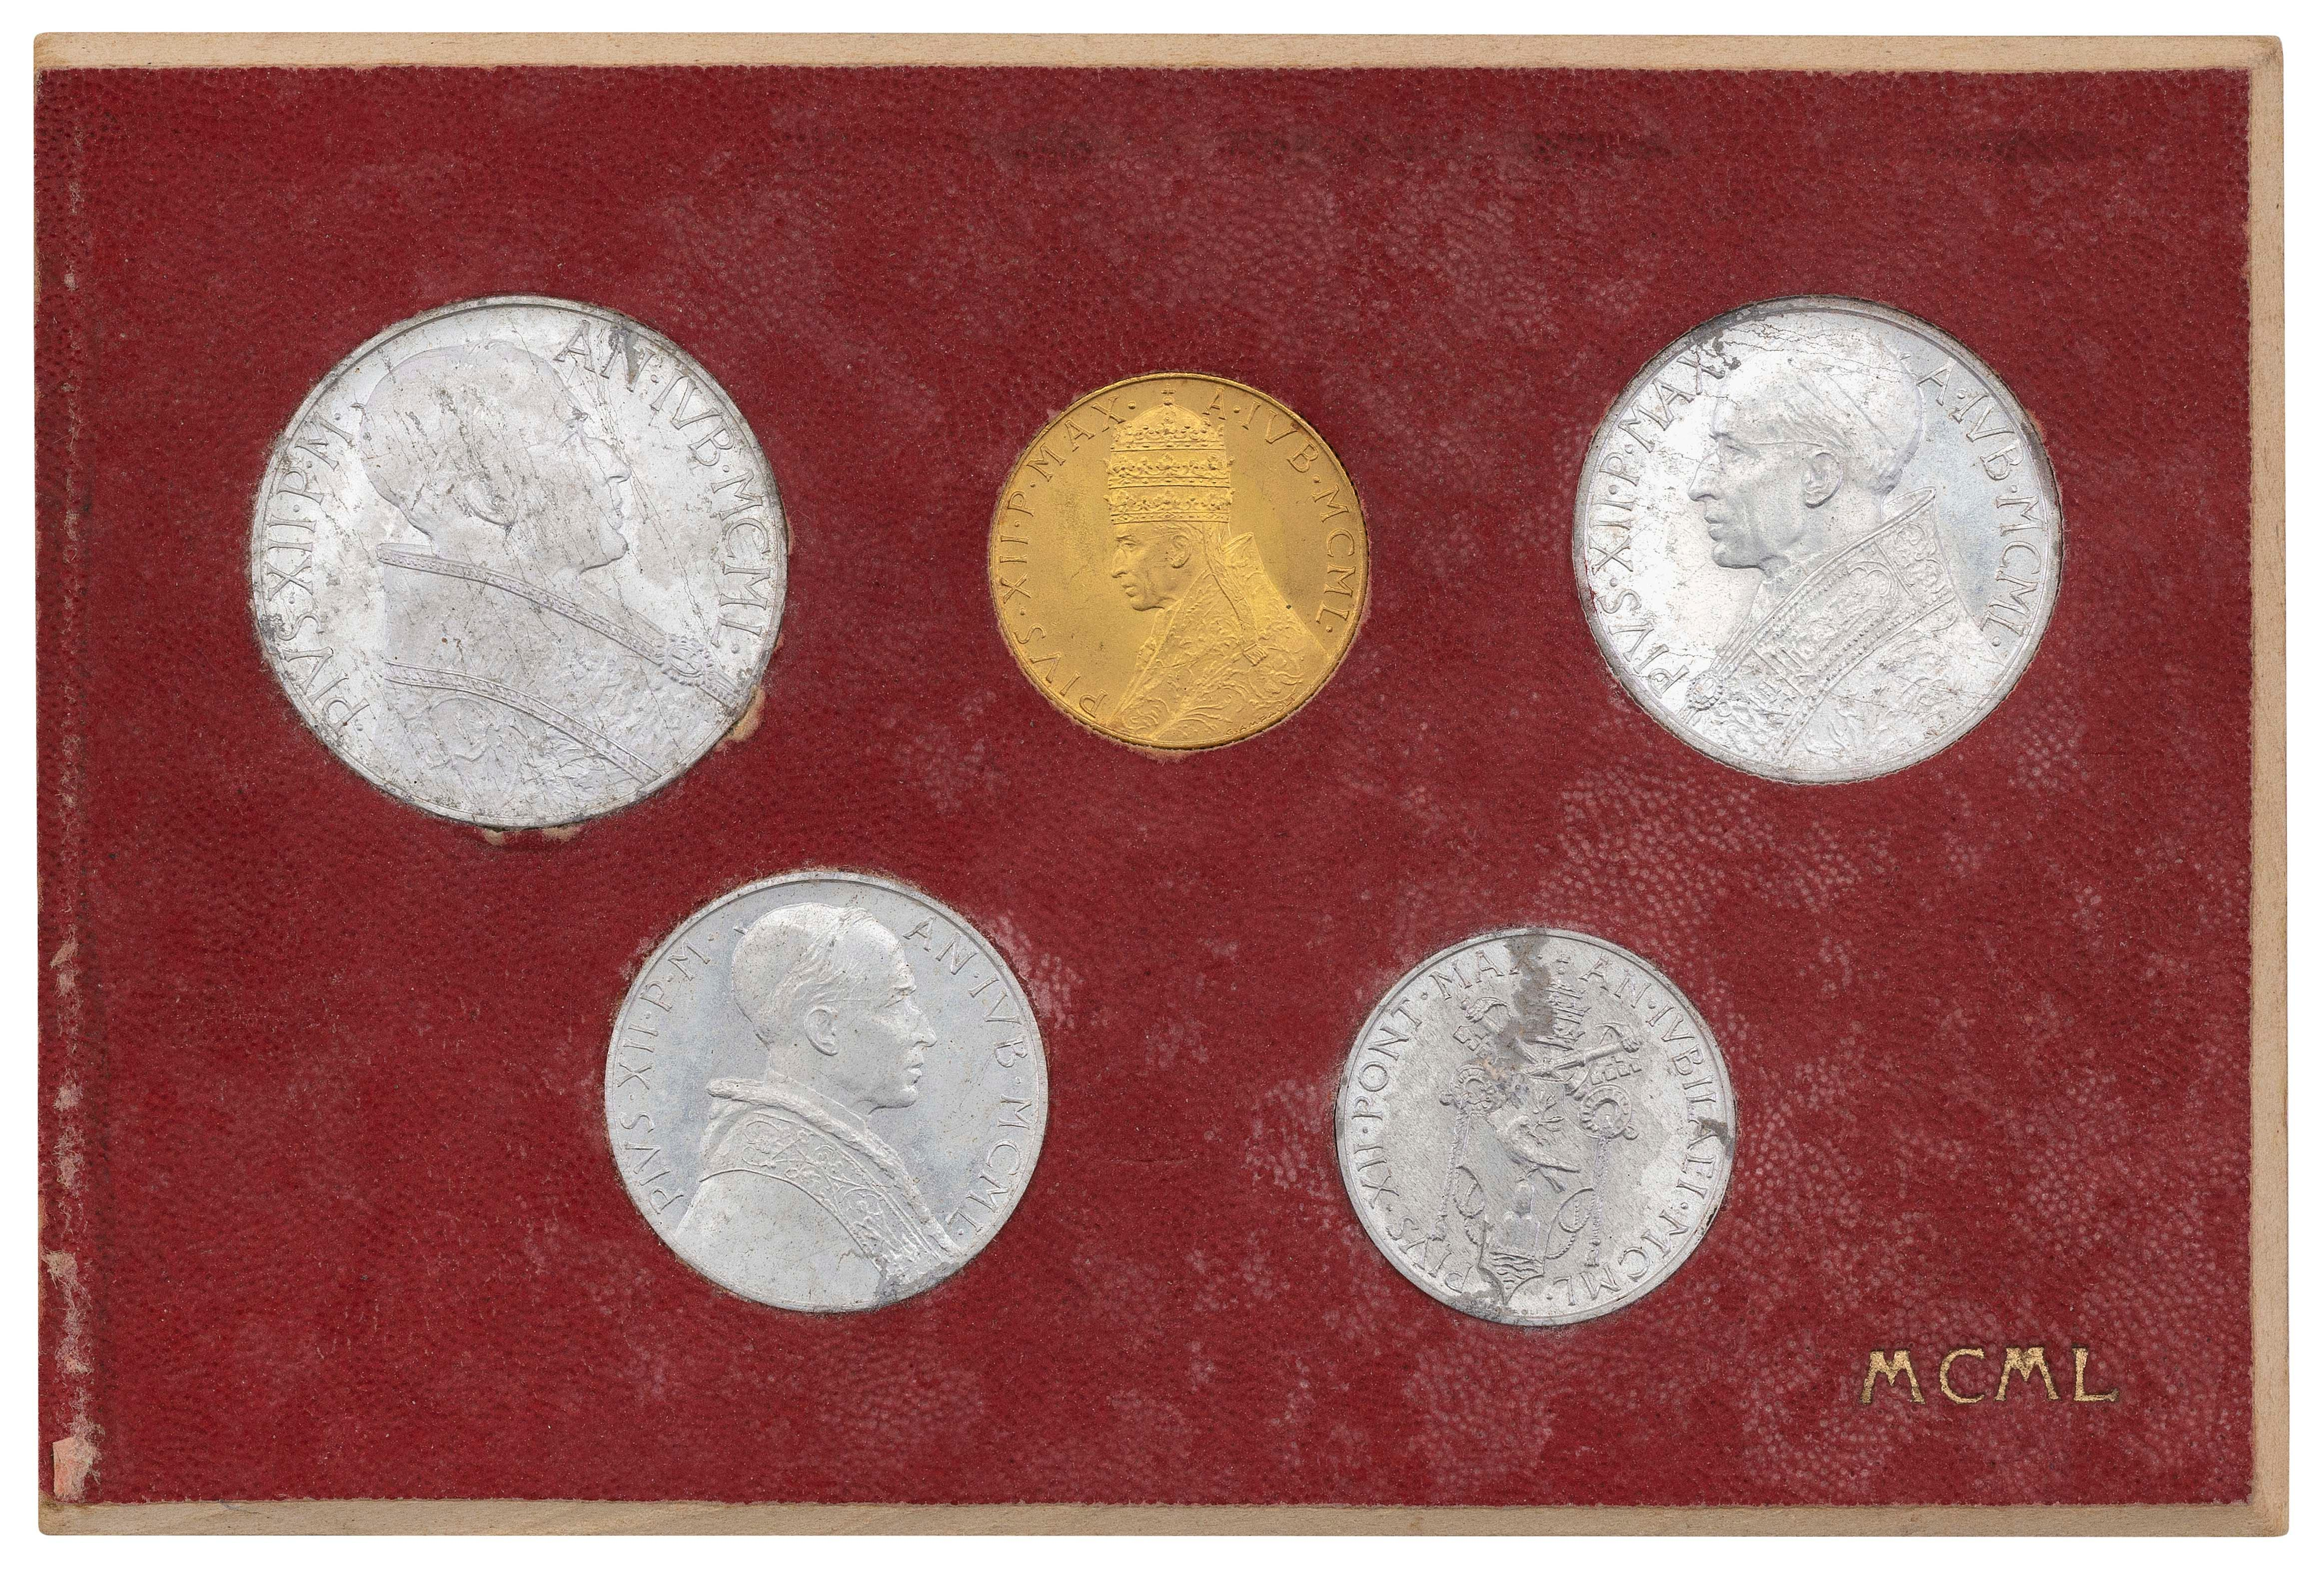 """1950 VATICAN CITY POPE PIUS XII HOLY YEAR FIVE-PIECE COIN SET Card 3"""" x 5""""."""